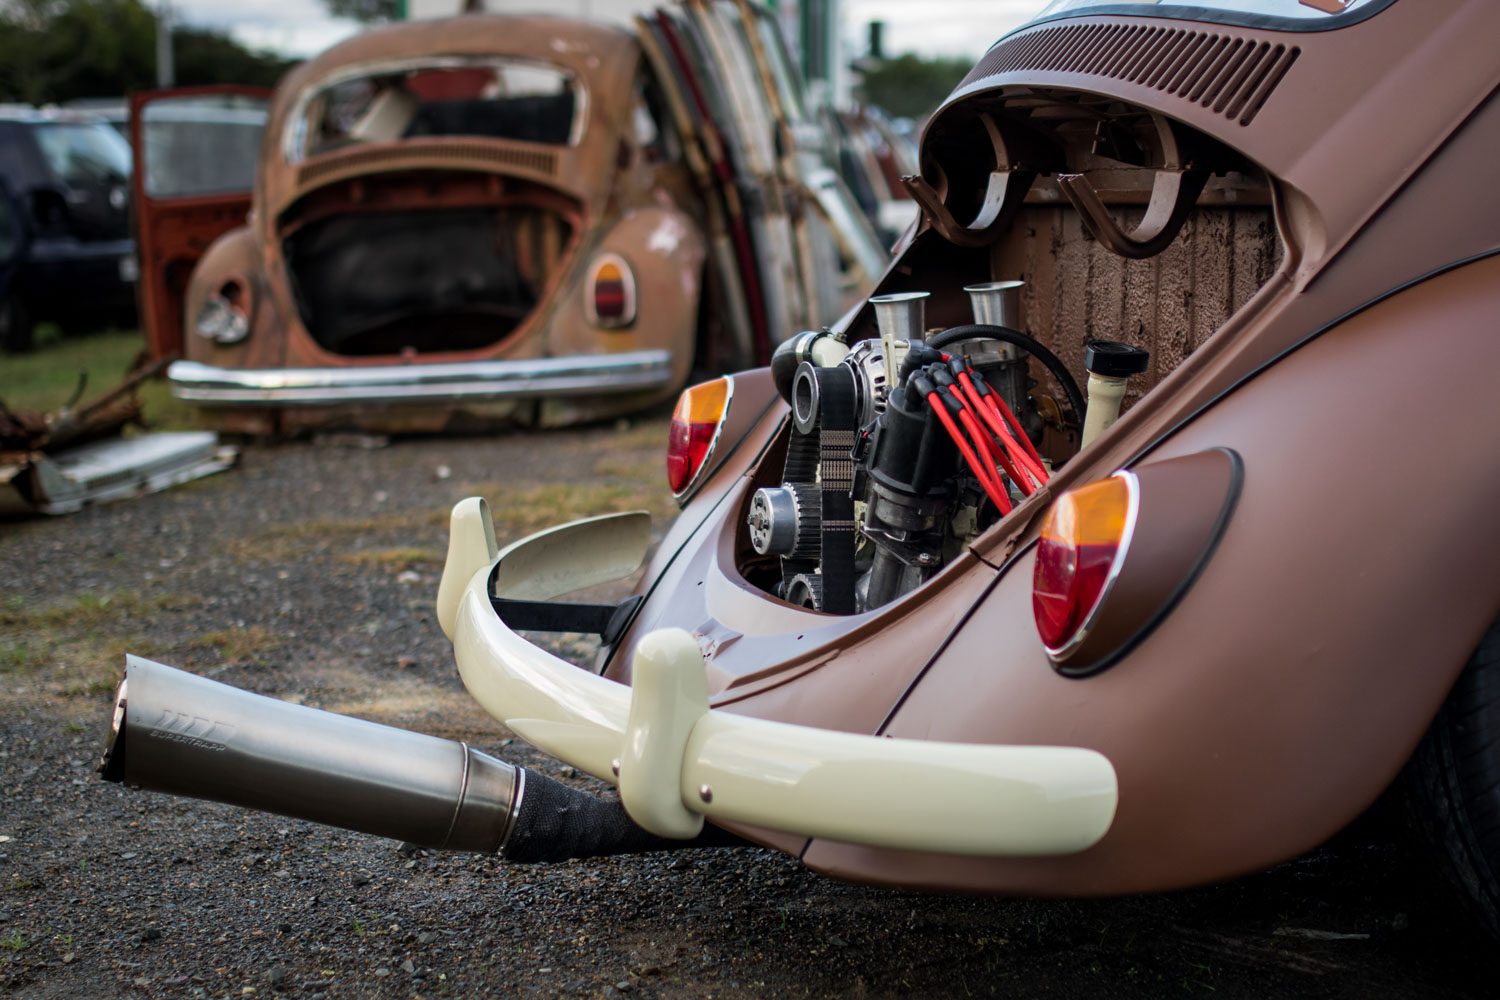 21 Midnights: 12a rotary crammed into a VW Beetle — The